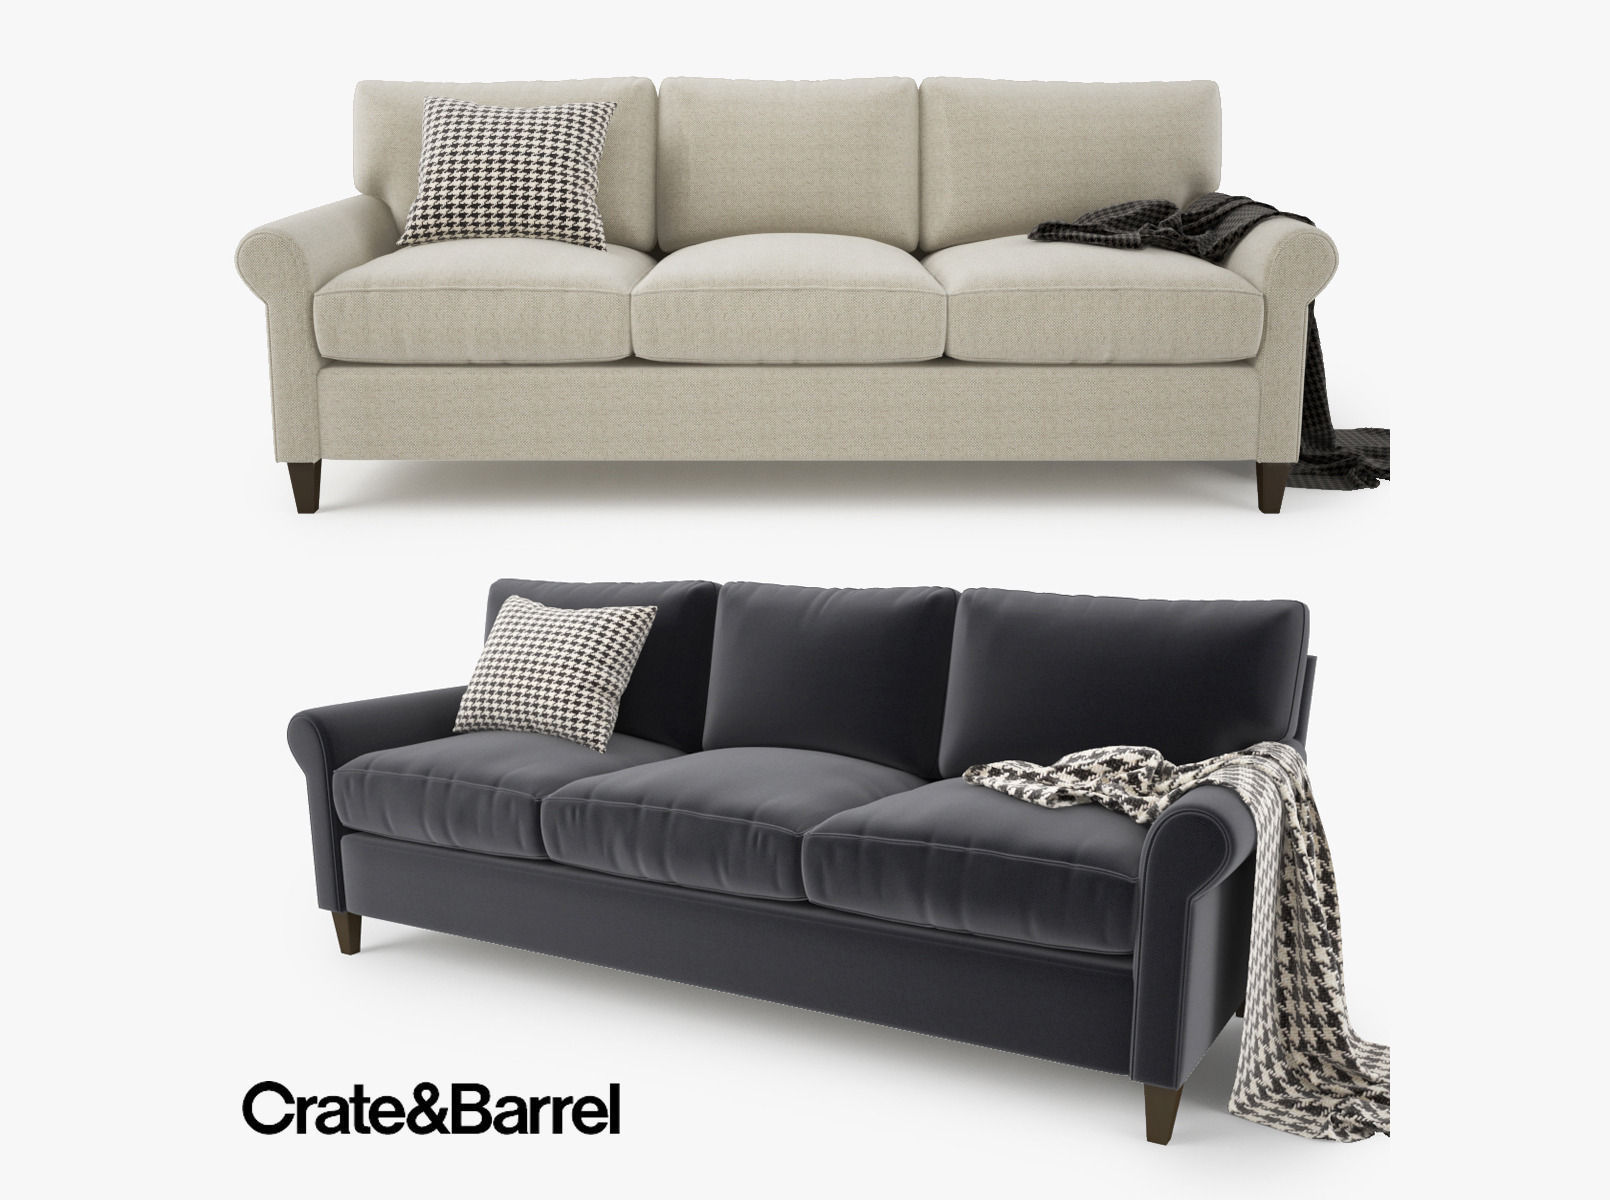 crate and barrel montclair 3 seat sofa 3d model max obj fbx mtl